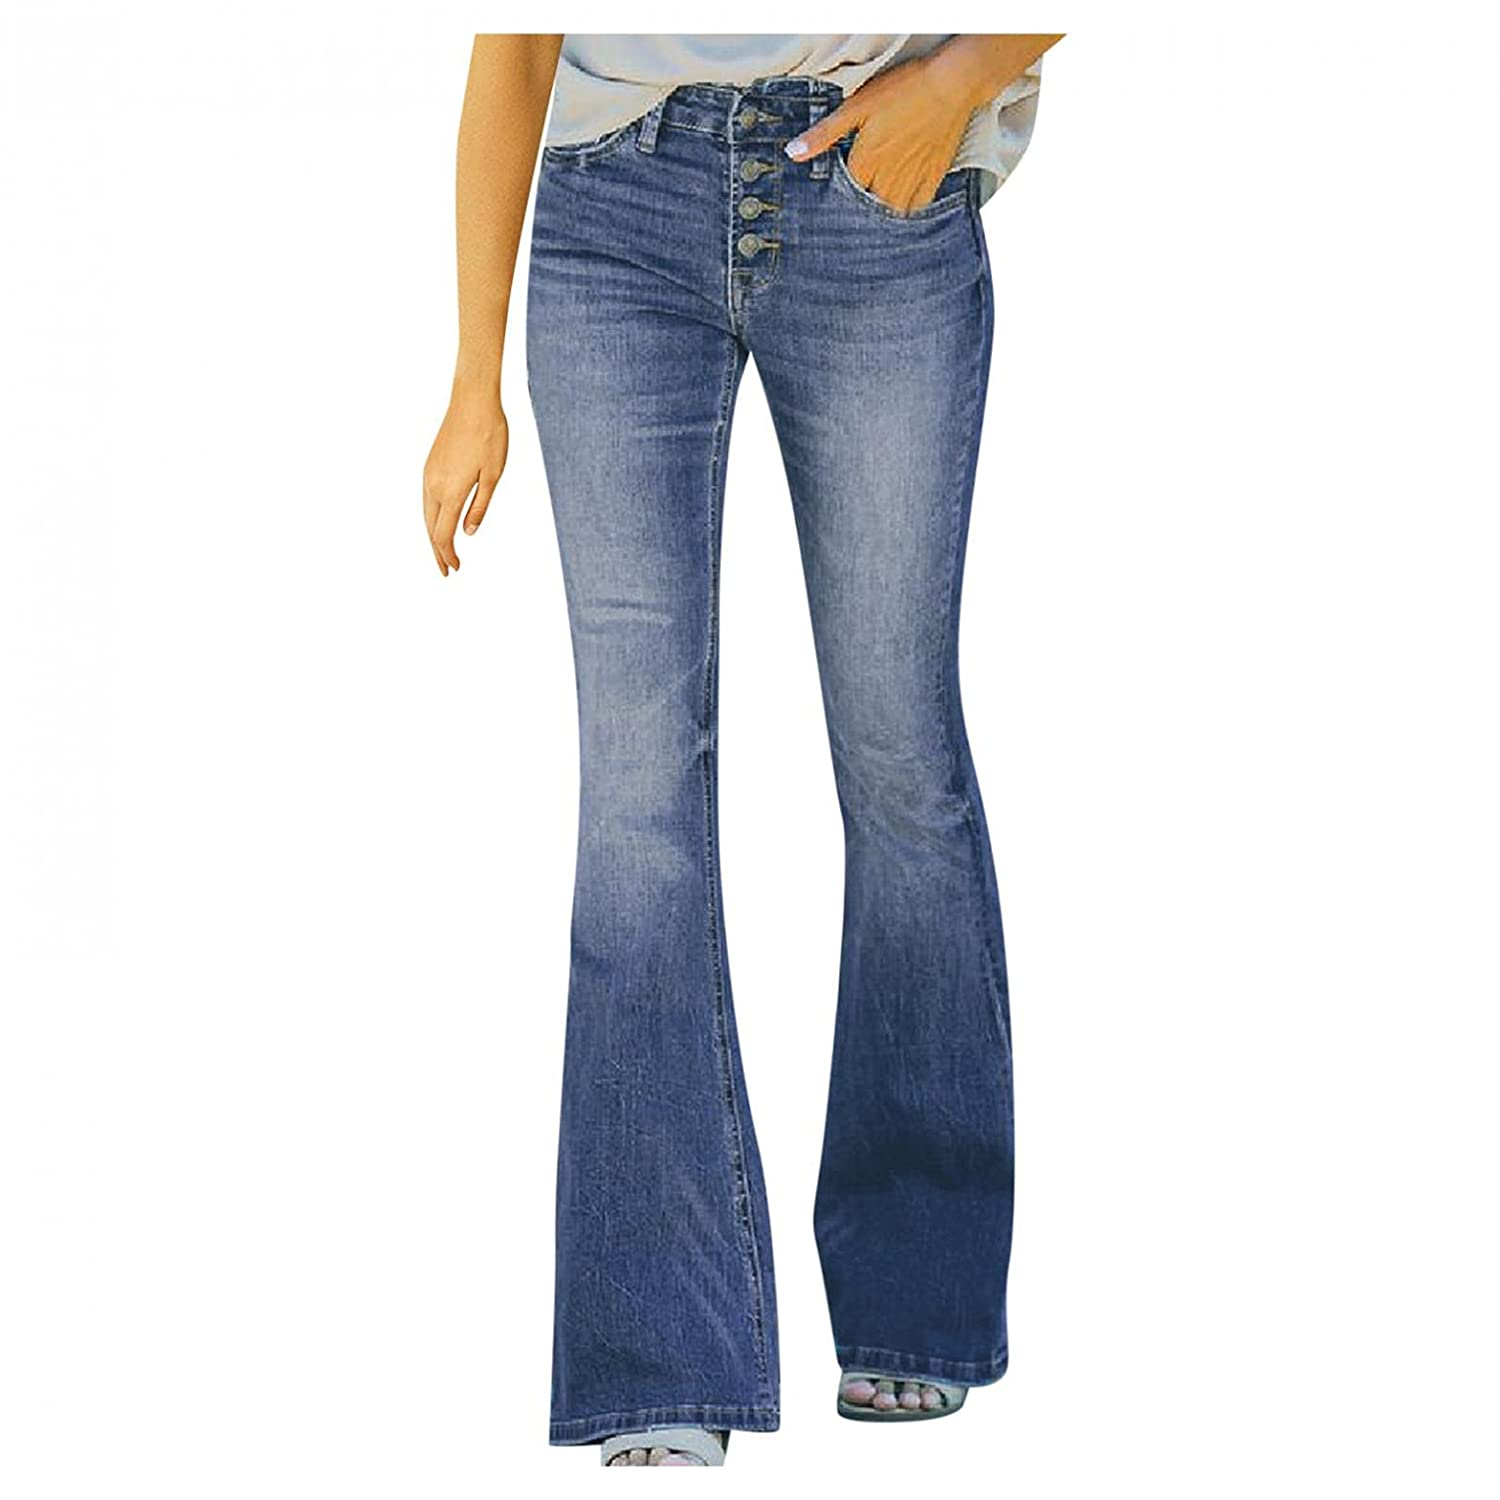 Padaleks High Waisted Jeans for Women, Women's Plus Size 4 Button Stretch Skinny Trousers Flare Hem Denim Pants